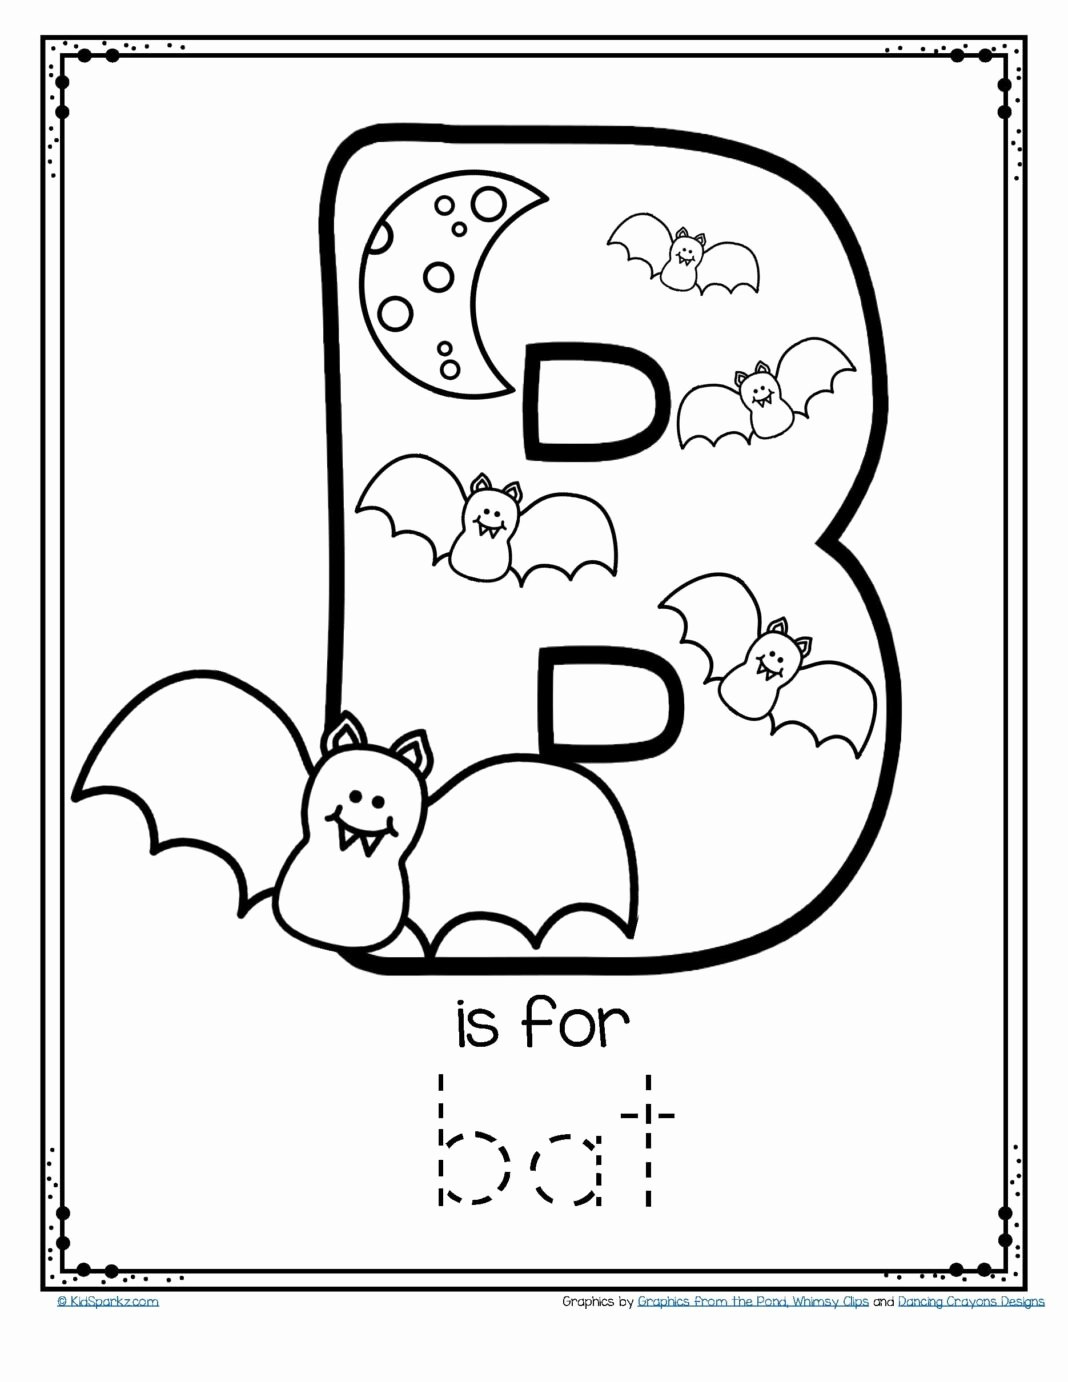 Alphabet Learning Worksheets for Preschoolers Awesome Worksheets Free Alphabet Tracing and Coloring Printable is